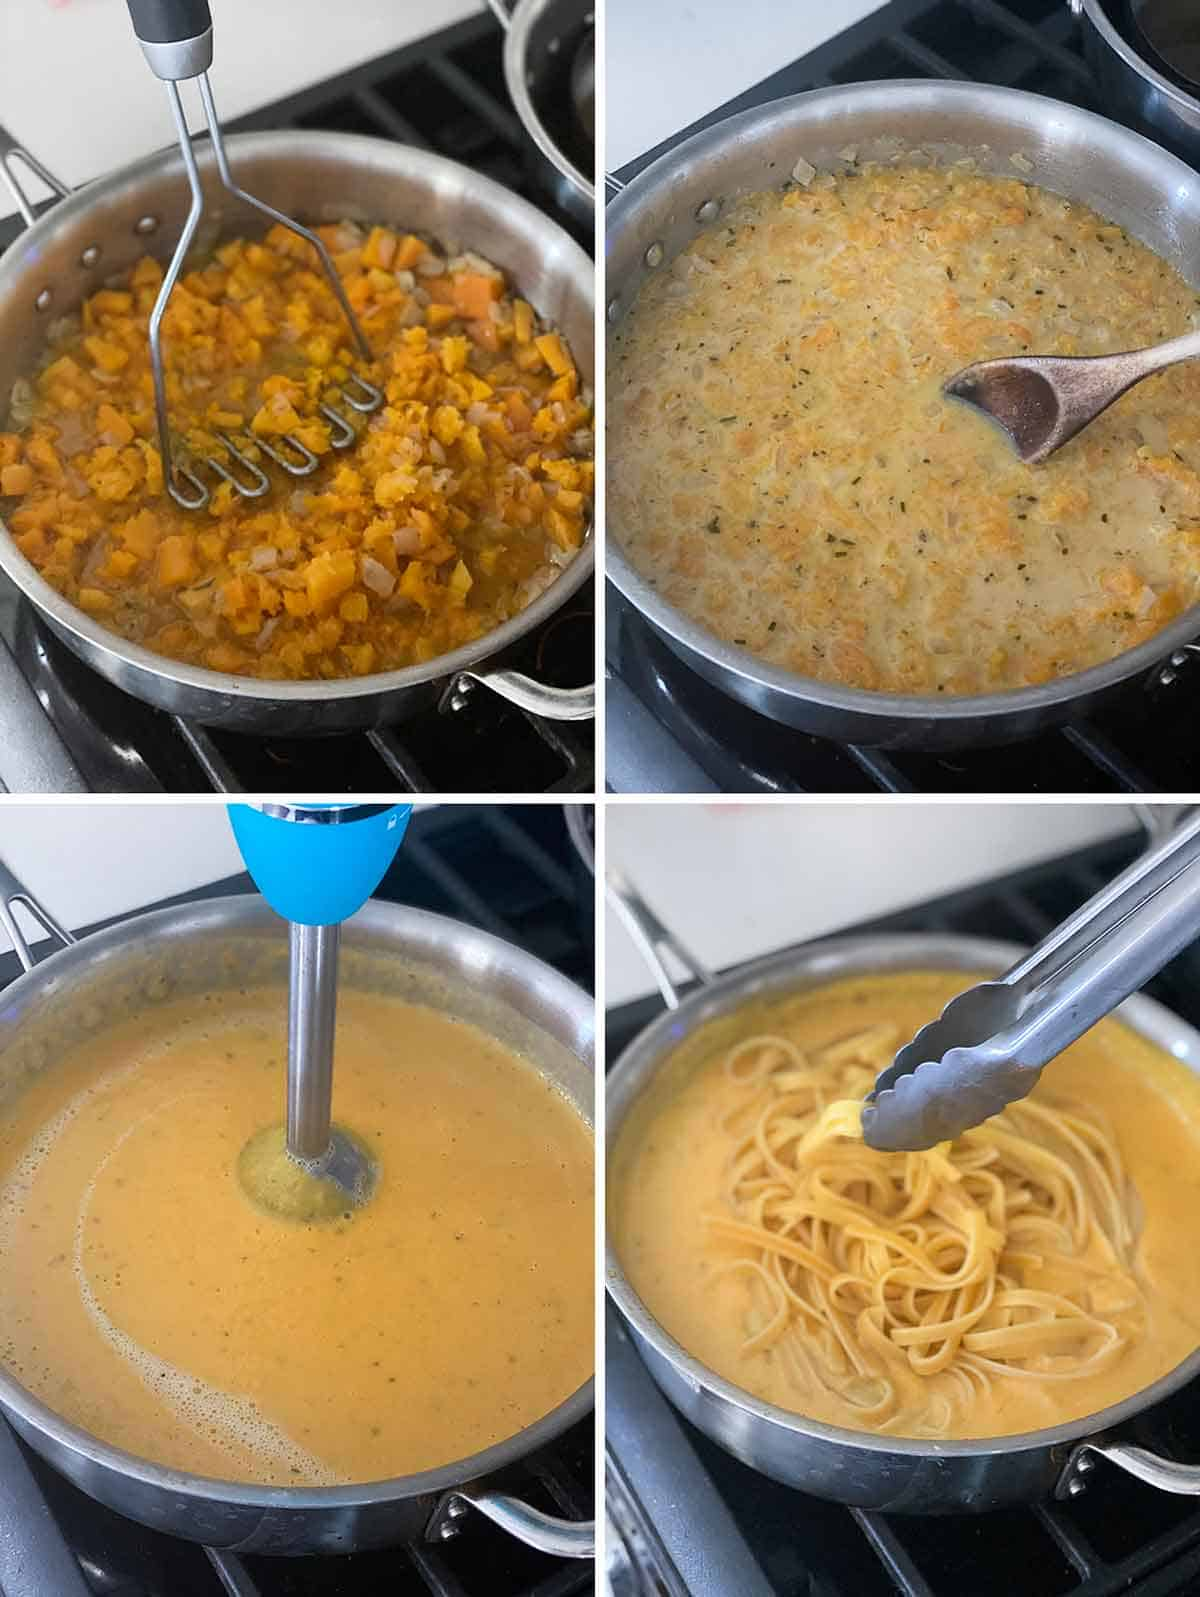 Process collage showing mashing butternut squash and blending in a skillet and adding pasta.